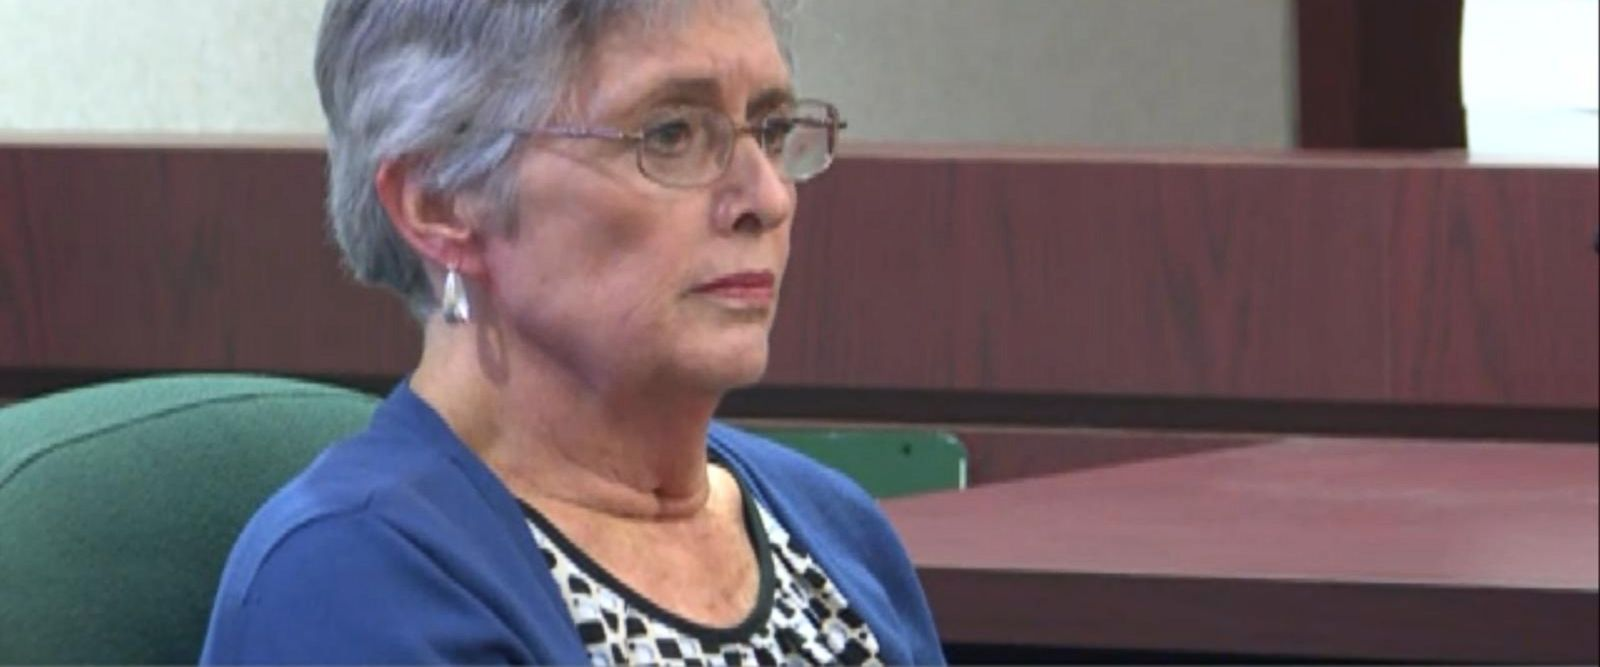 The wife of the former police captain accused of fatally shooting a man in a Florida movie theater testified in court Wednesday in a hearing that will determine if his claim of self-defense meets the criteria under Florida's Stand Your Ground law.